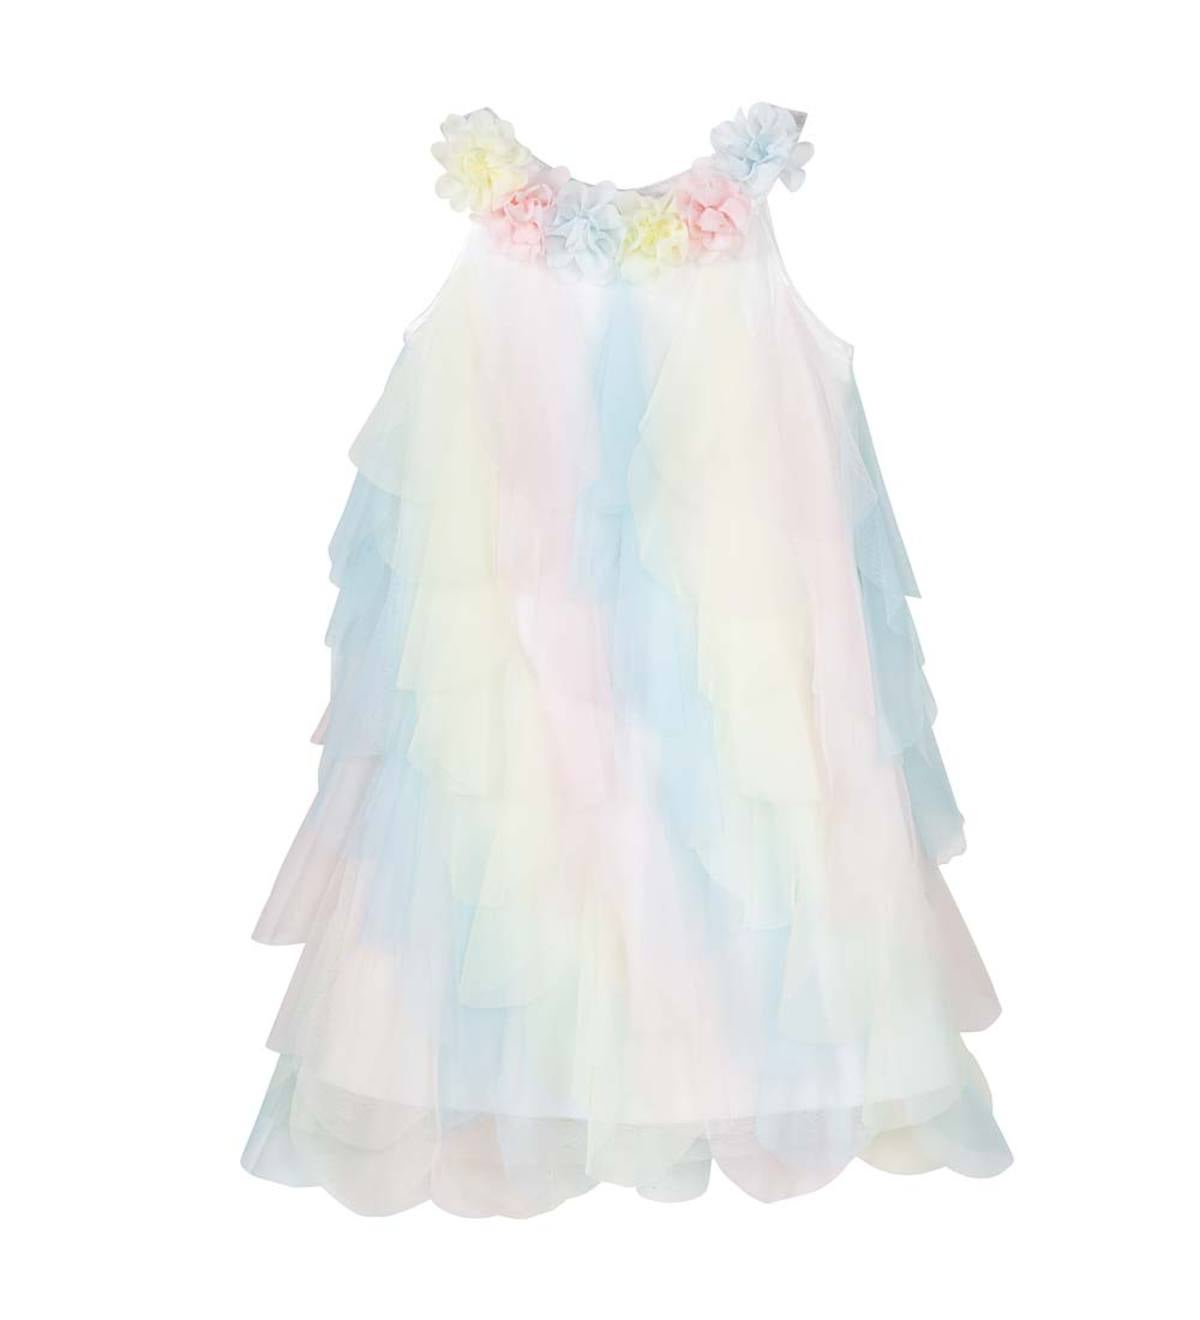 Sleeveless Multicolor Cascading Ruffles Dress - MLT - 5